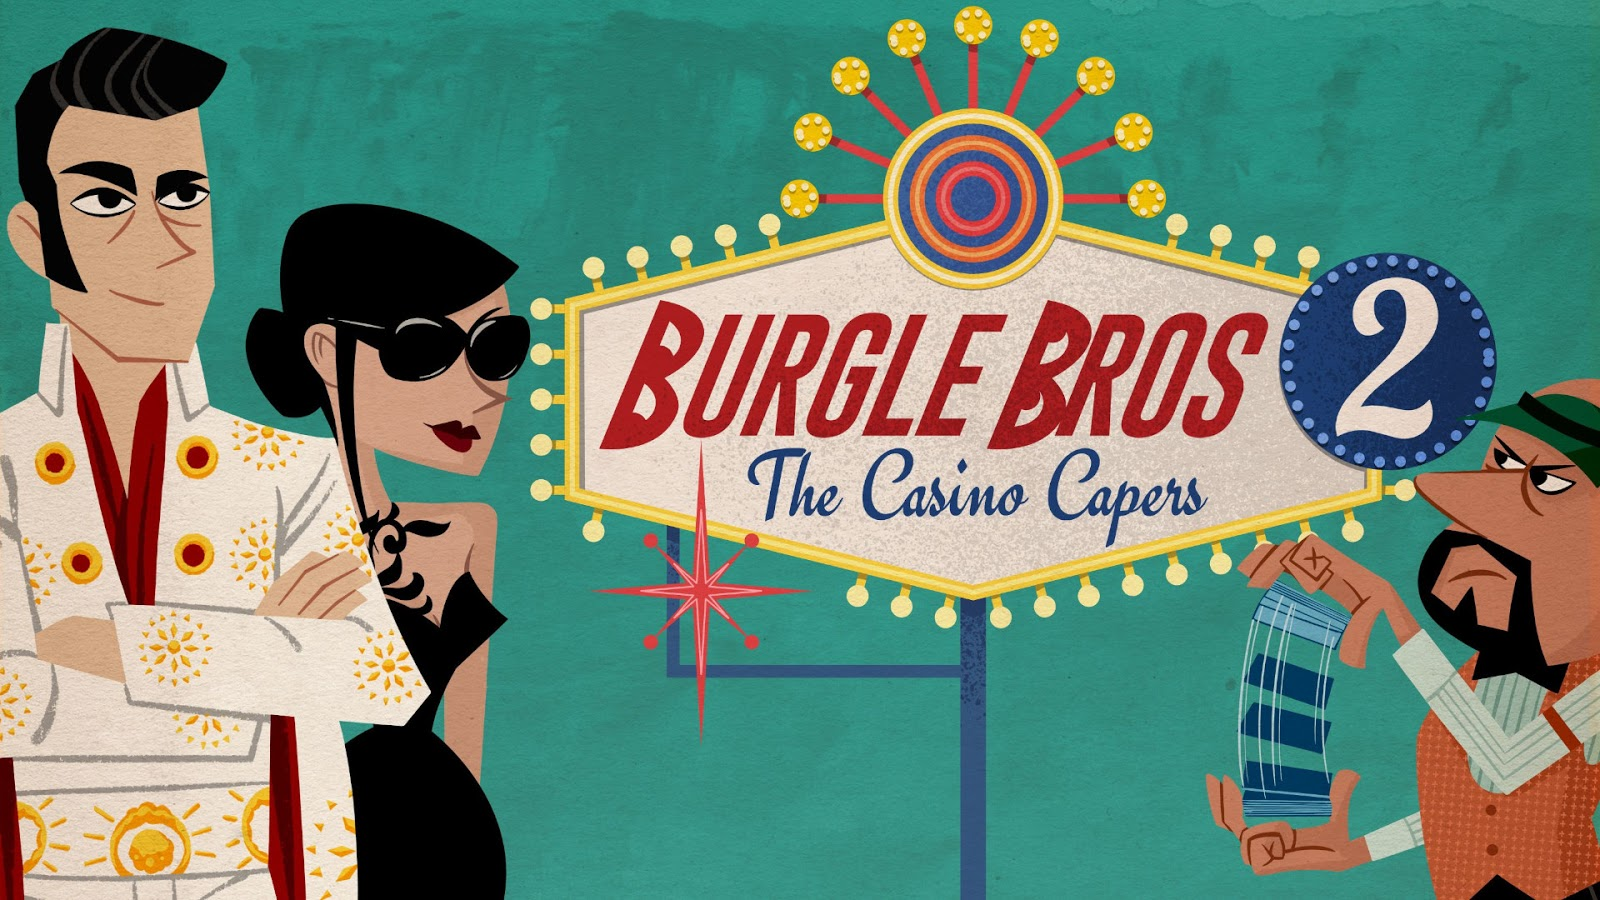 2020 Most Anticipated Games Best Arriving from Kickstarter Burgle Bros 2 Casio Capers